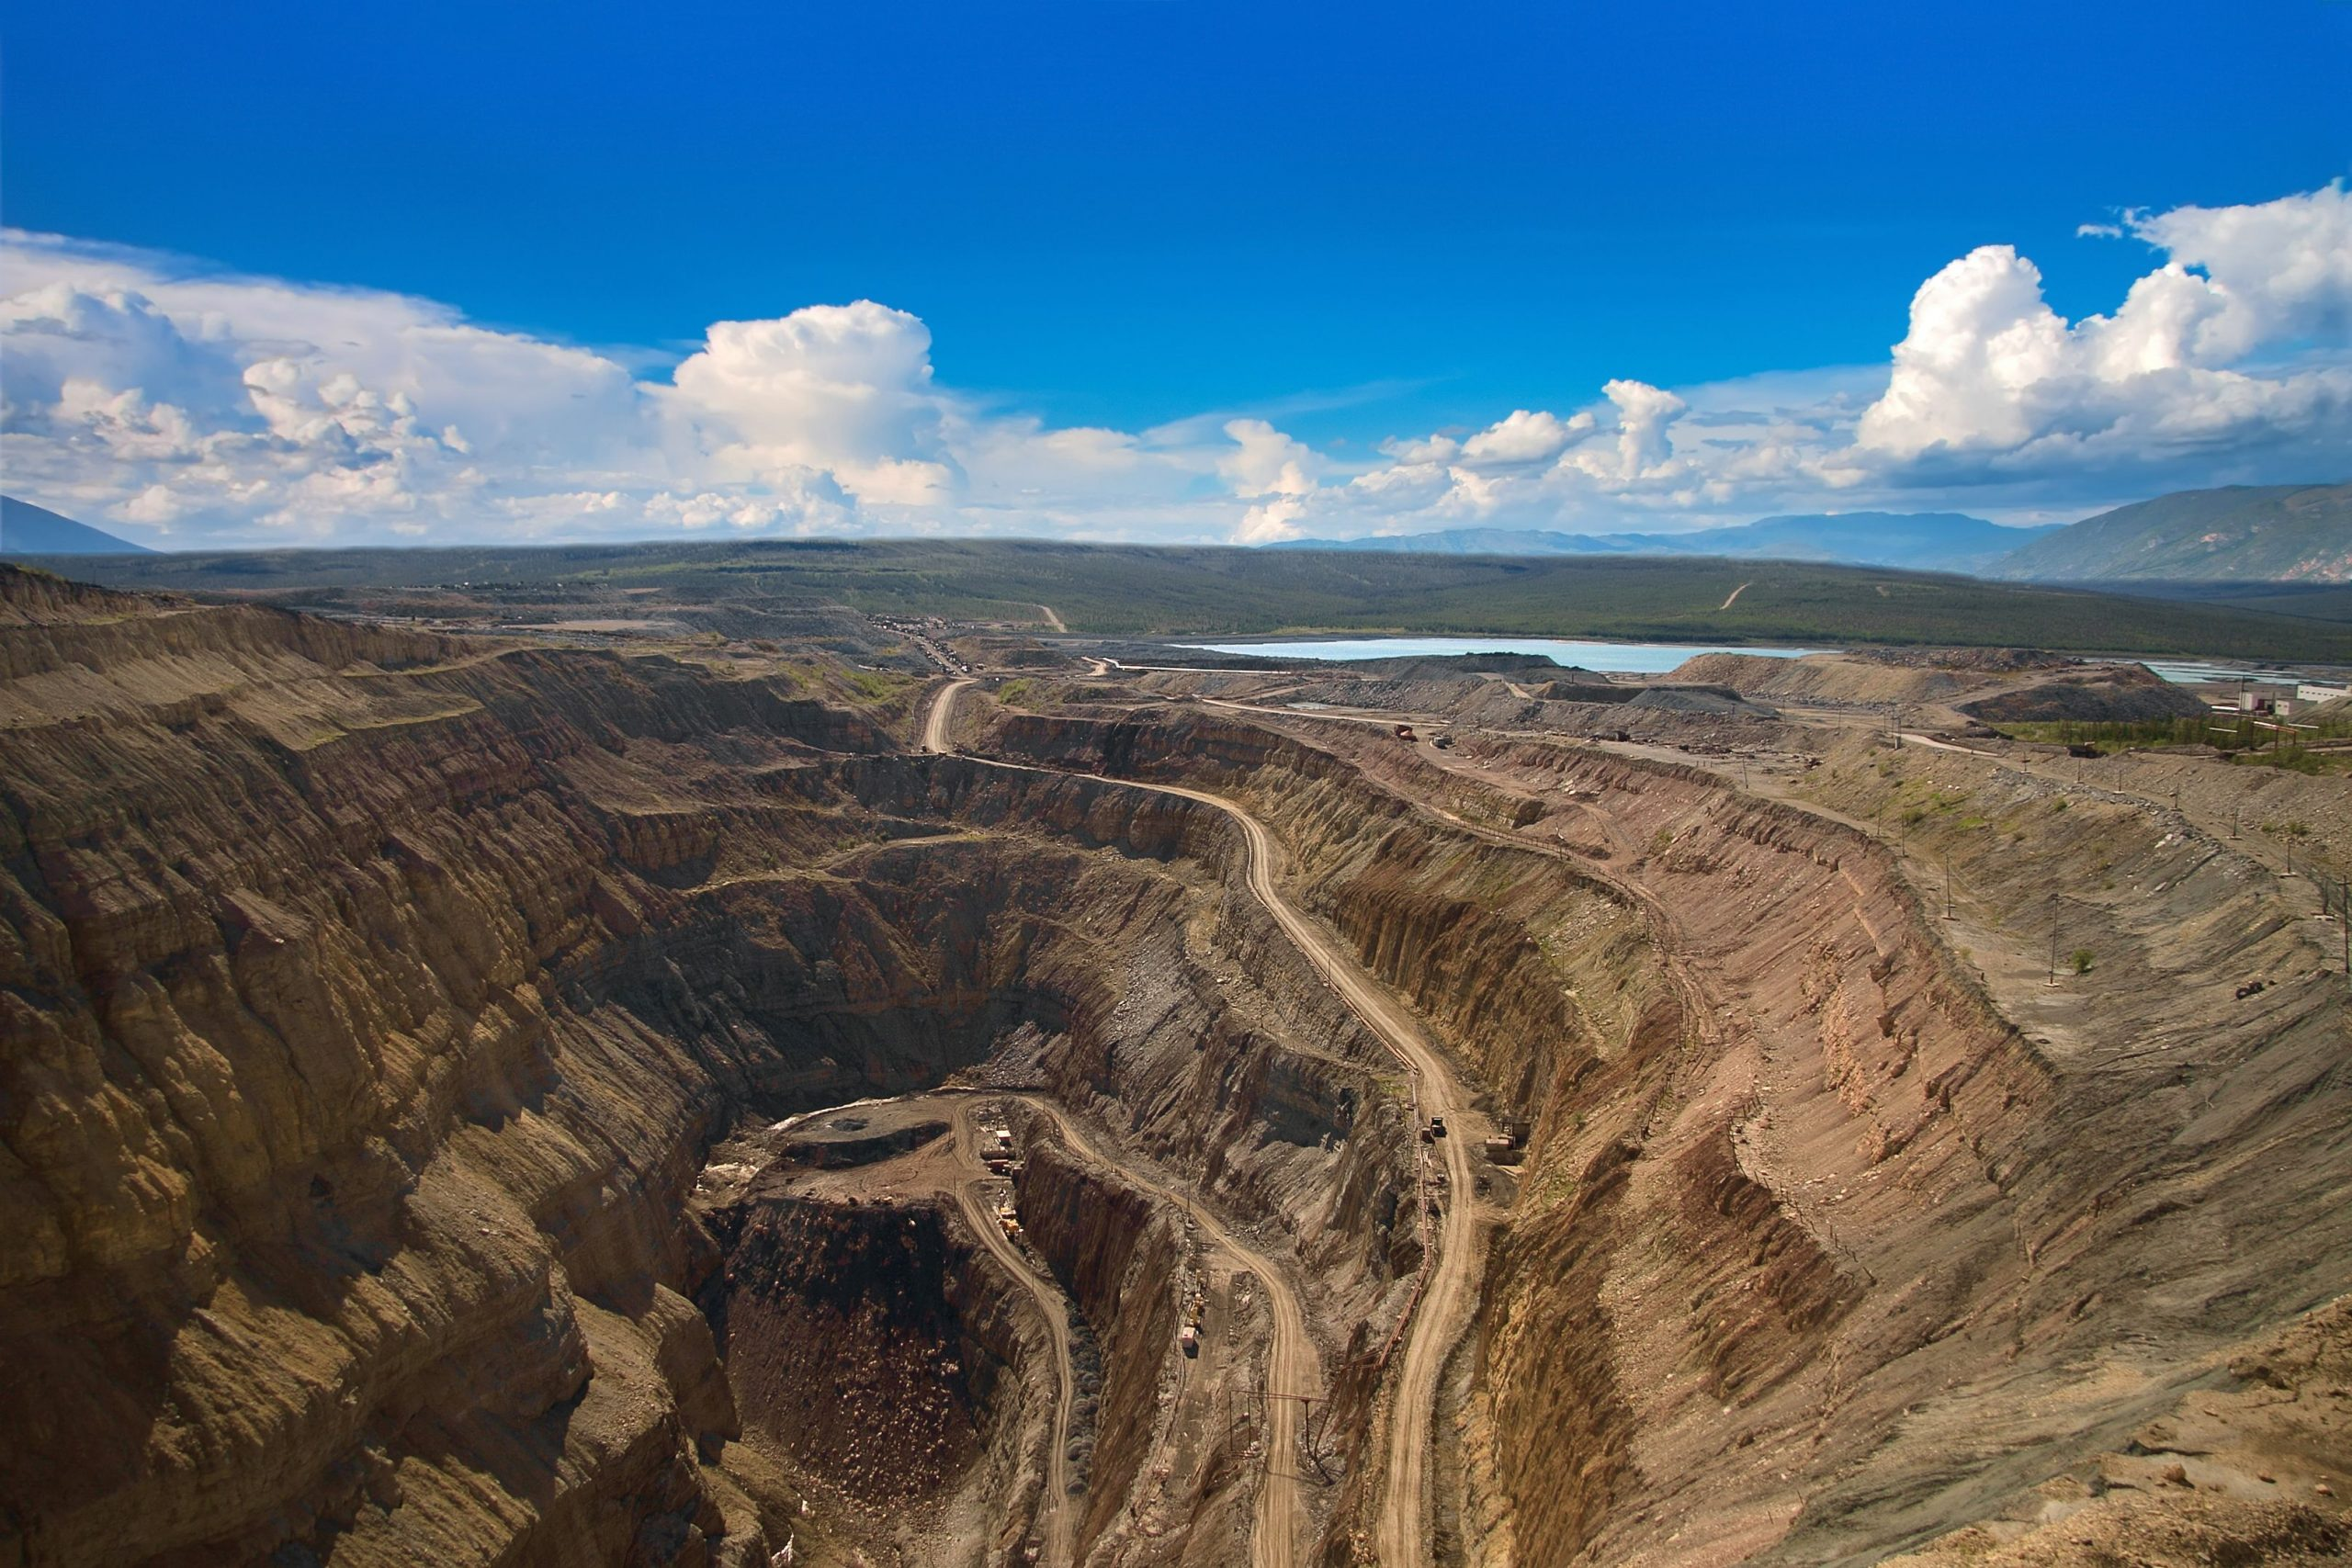 Aerial view of a diamond mine